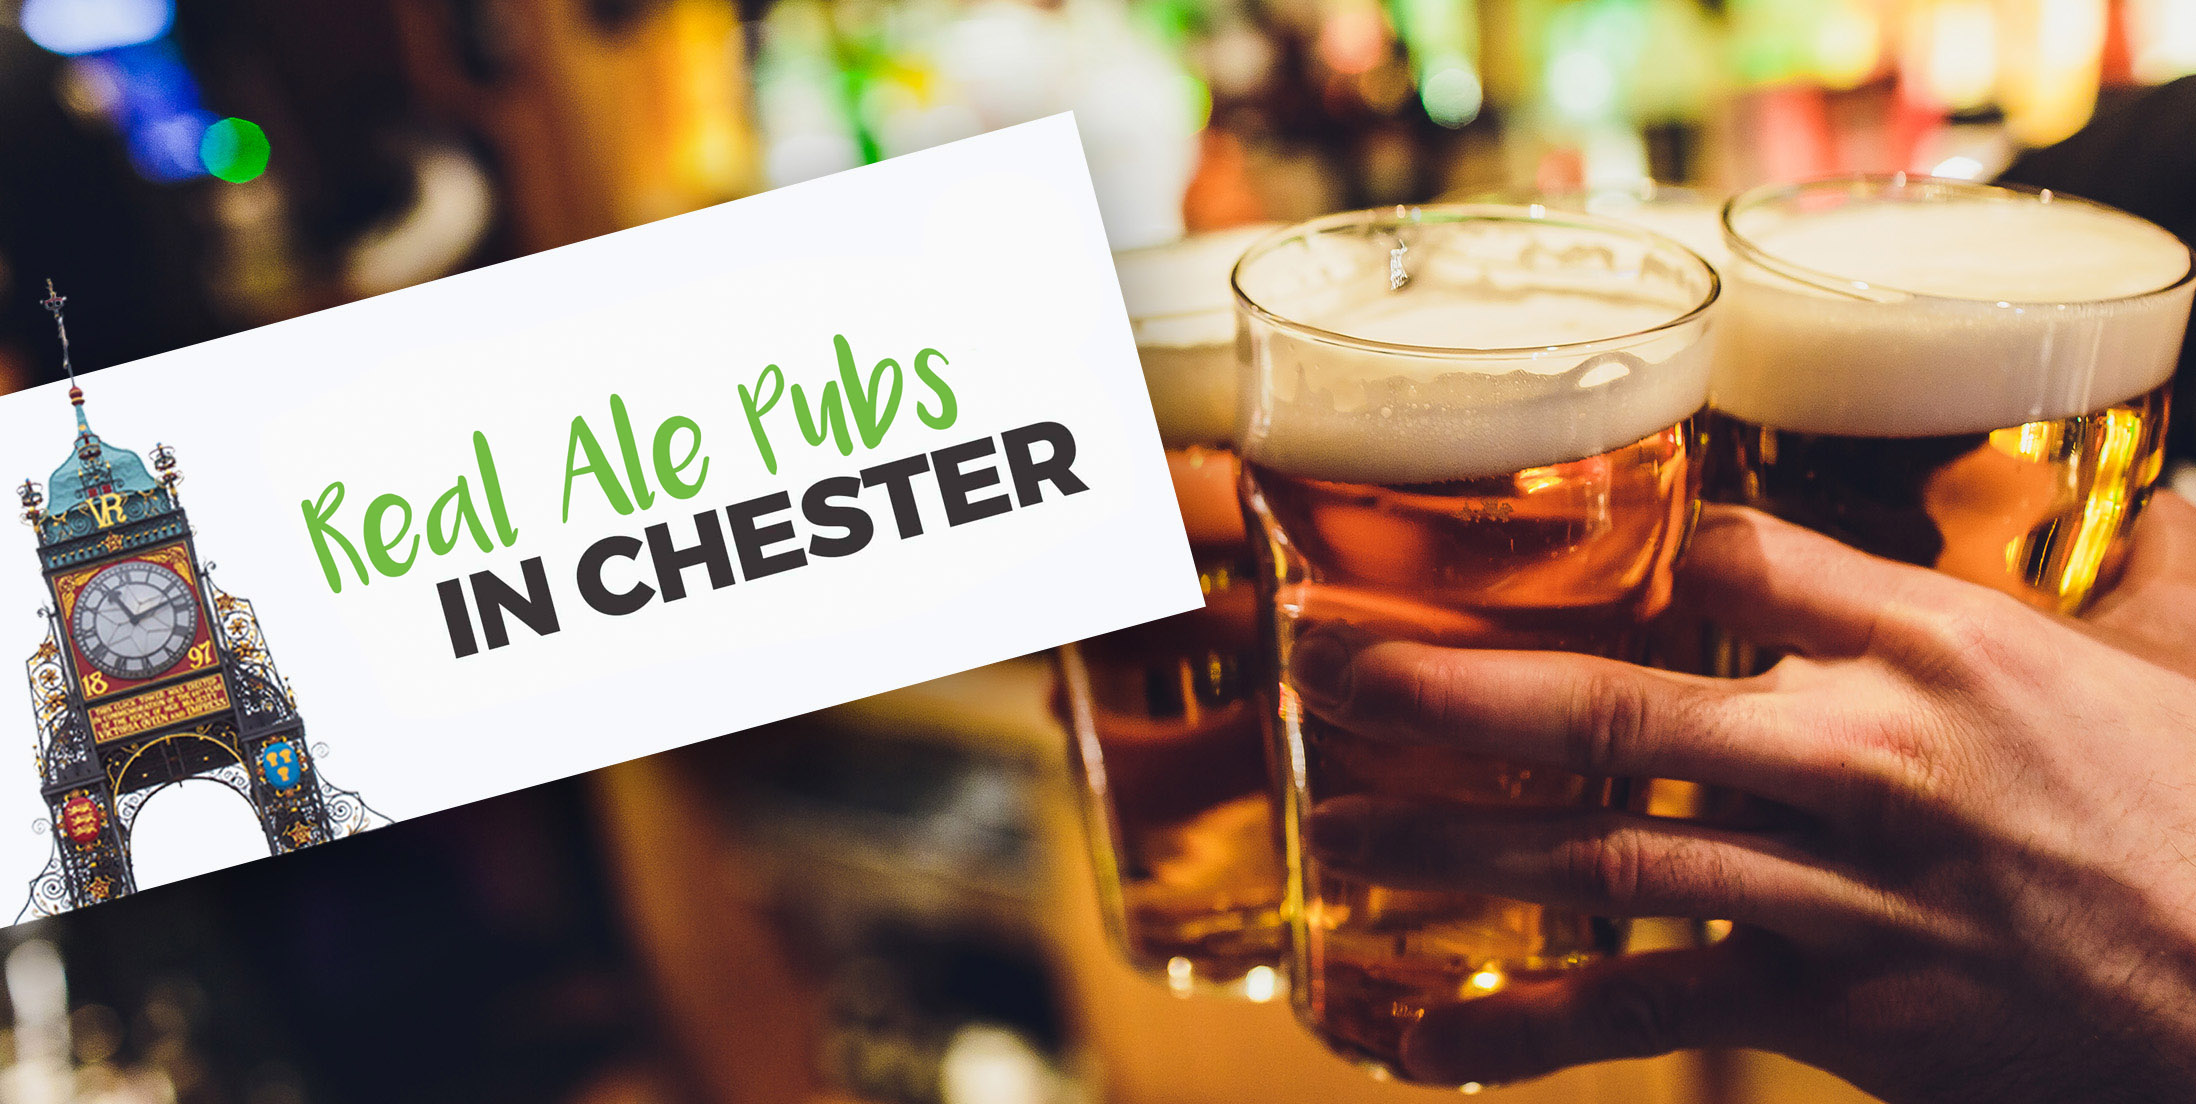 Real Ale Pubs in Chester (Banner)